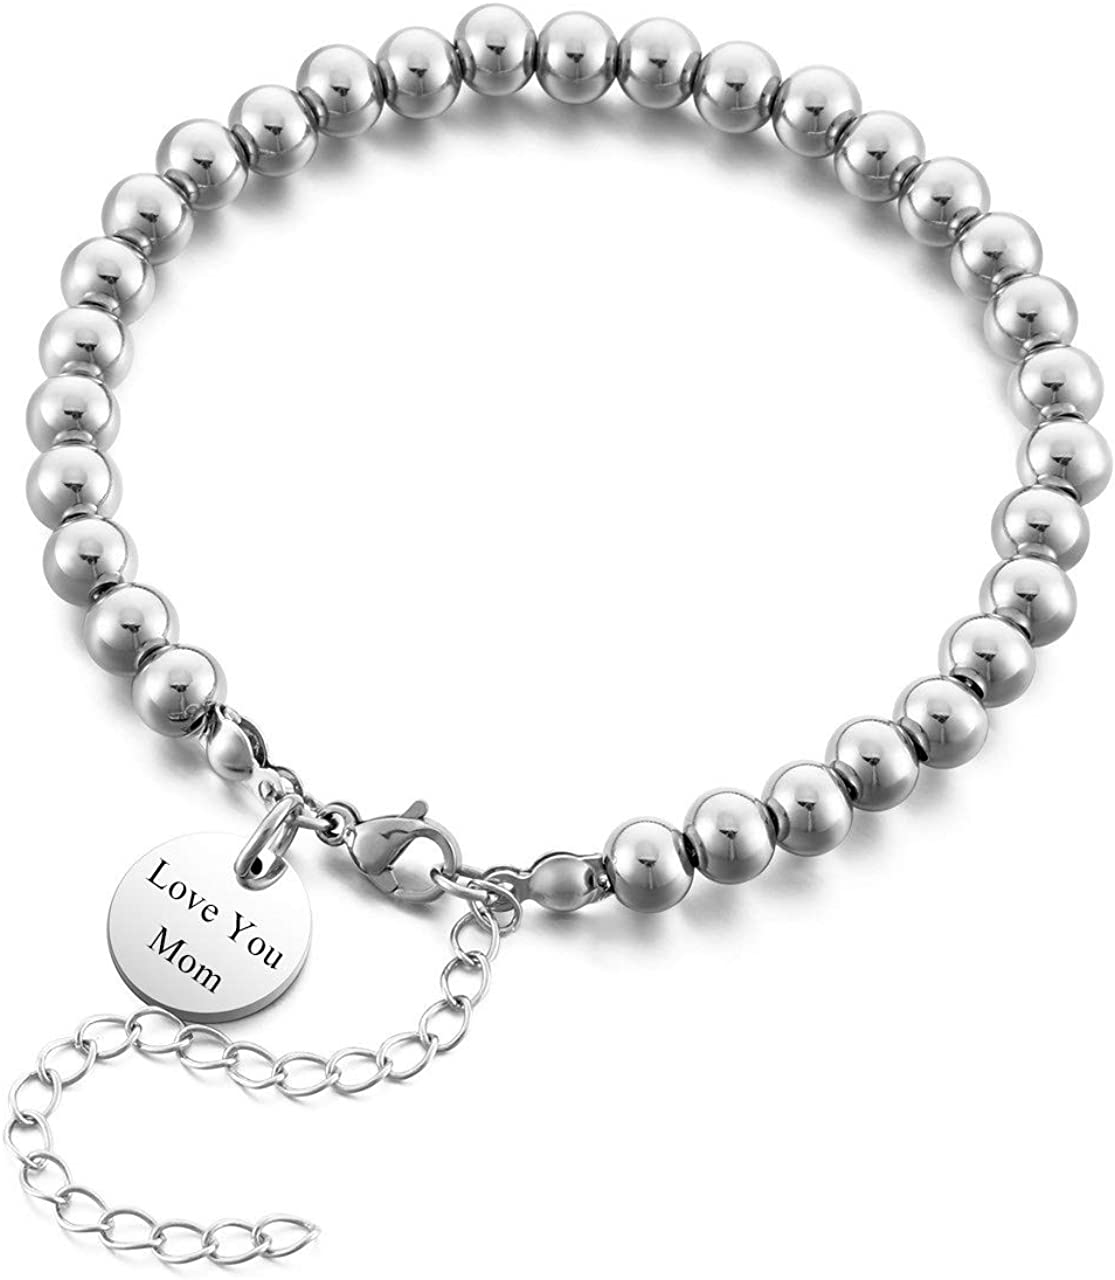 8mm Black Glass Pearl Necklace with Lobster Clasp Extension Chain